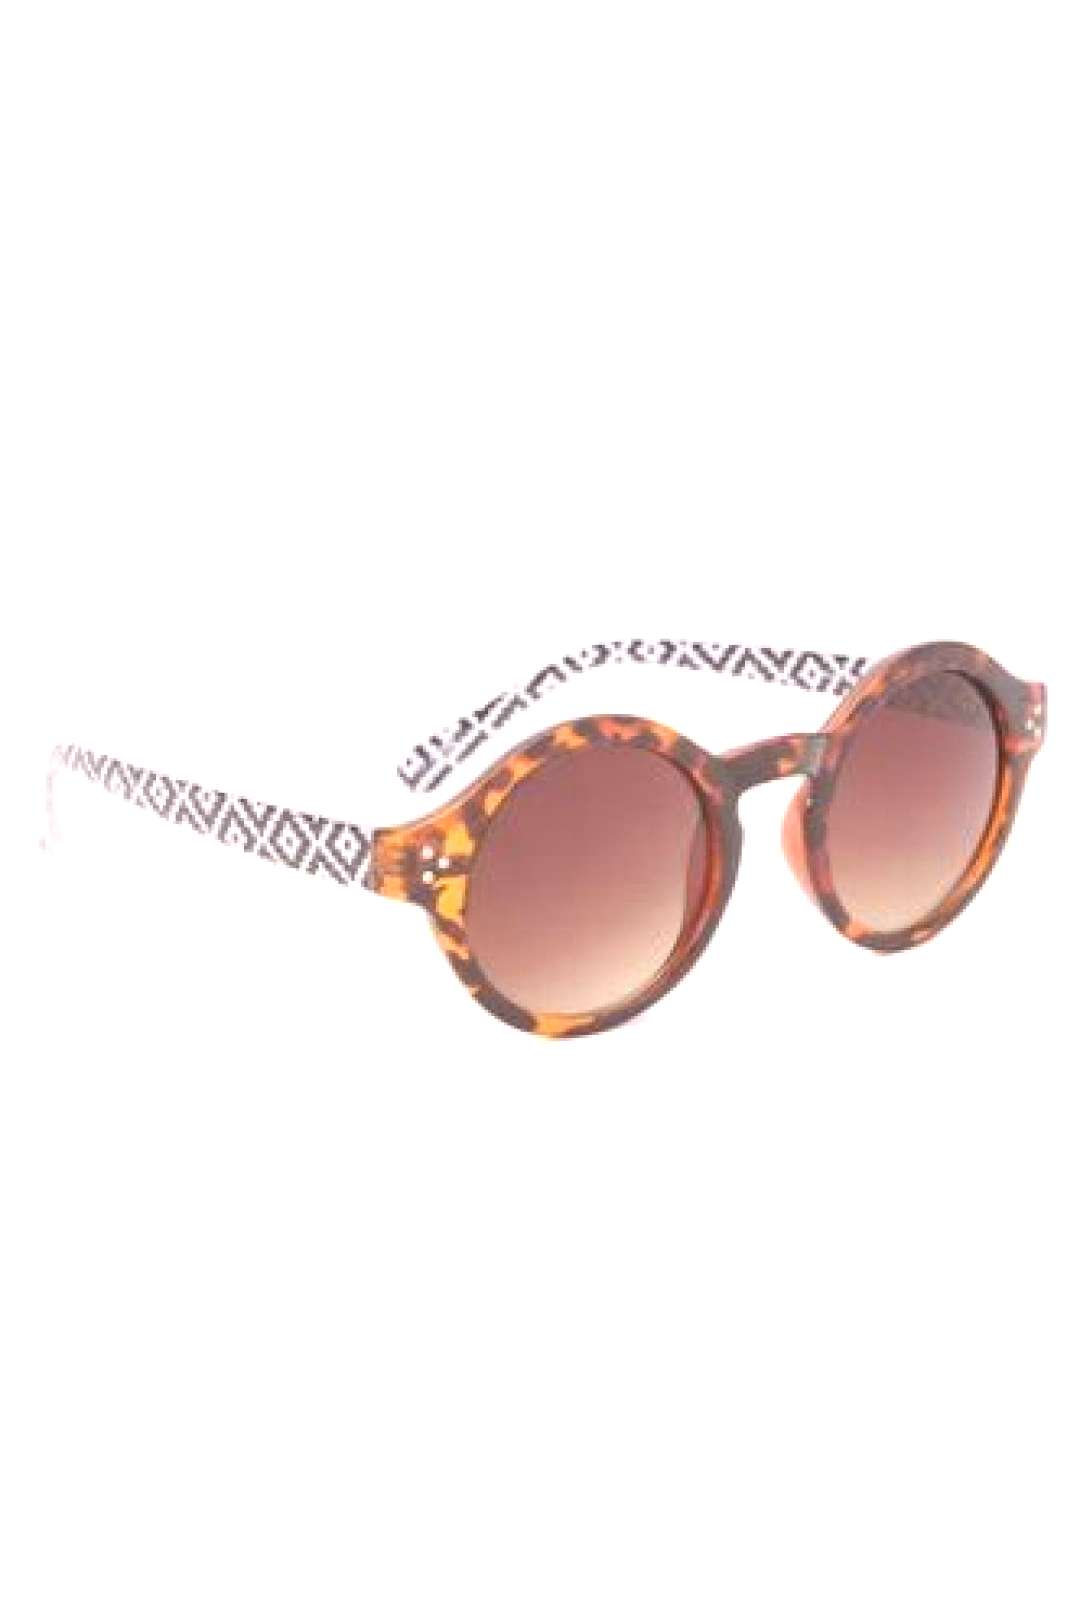 Ray Ban 80% OFF!gtgt With Love From CA Tortoise Round Sunglasses